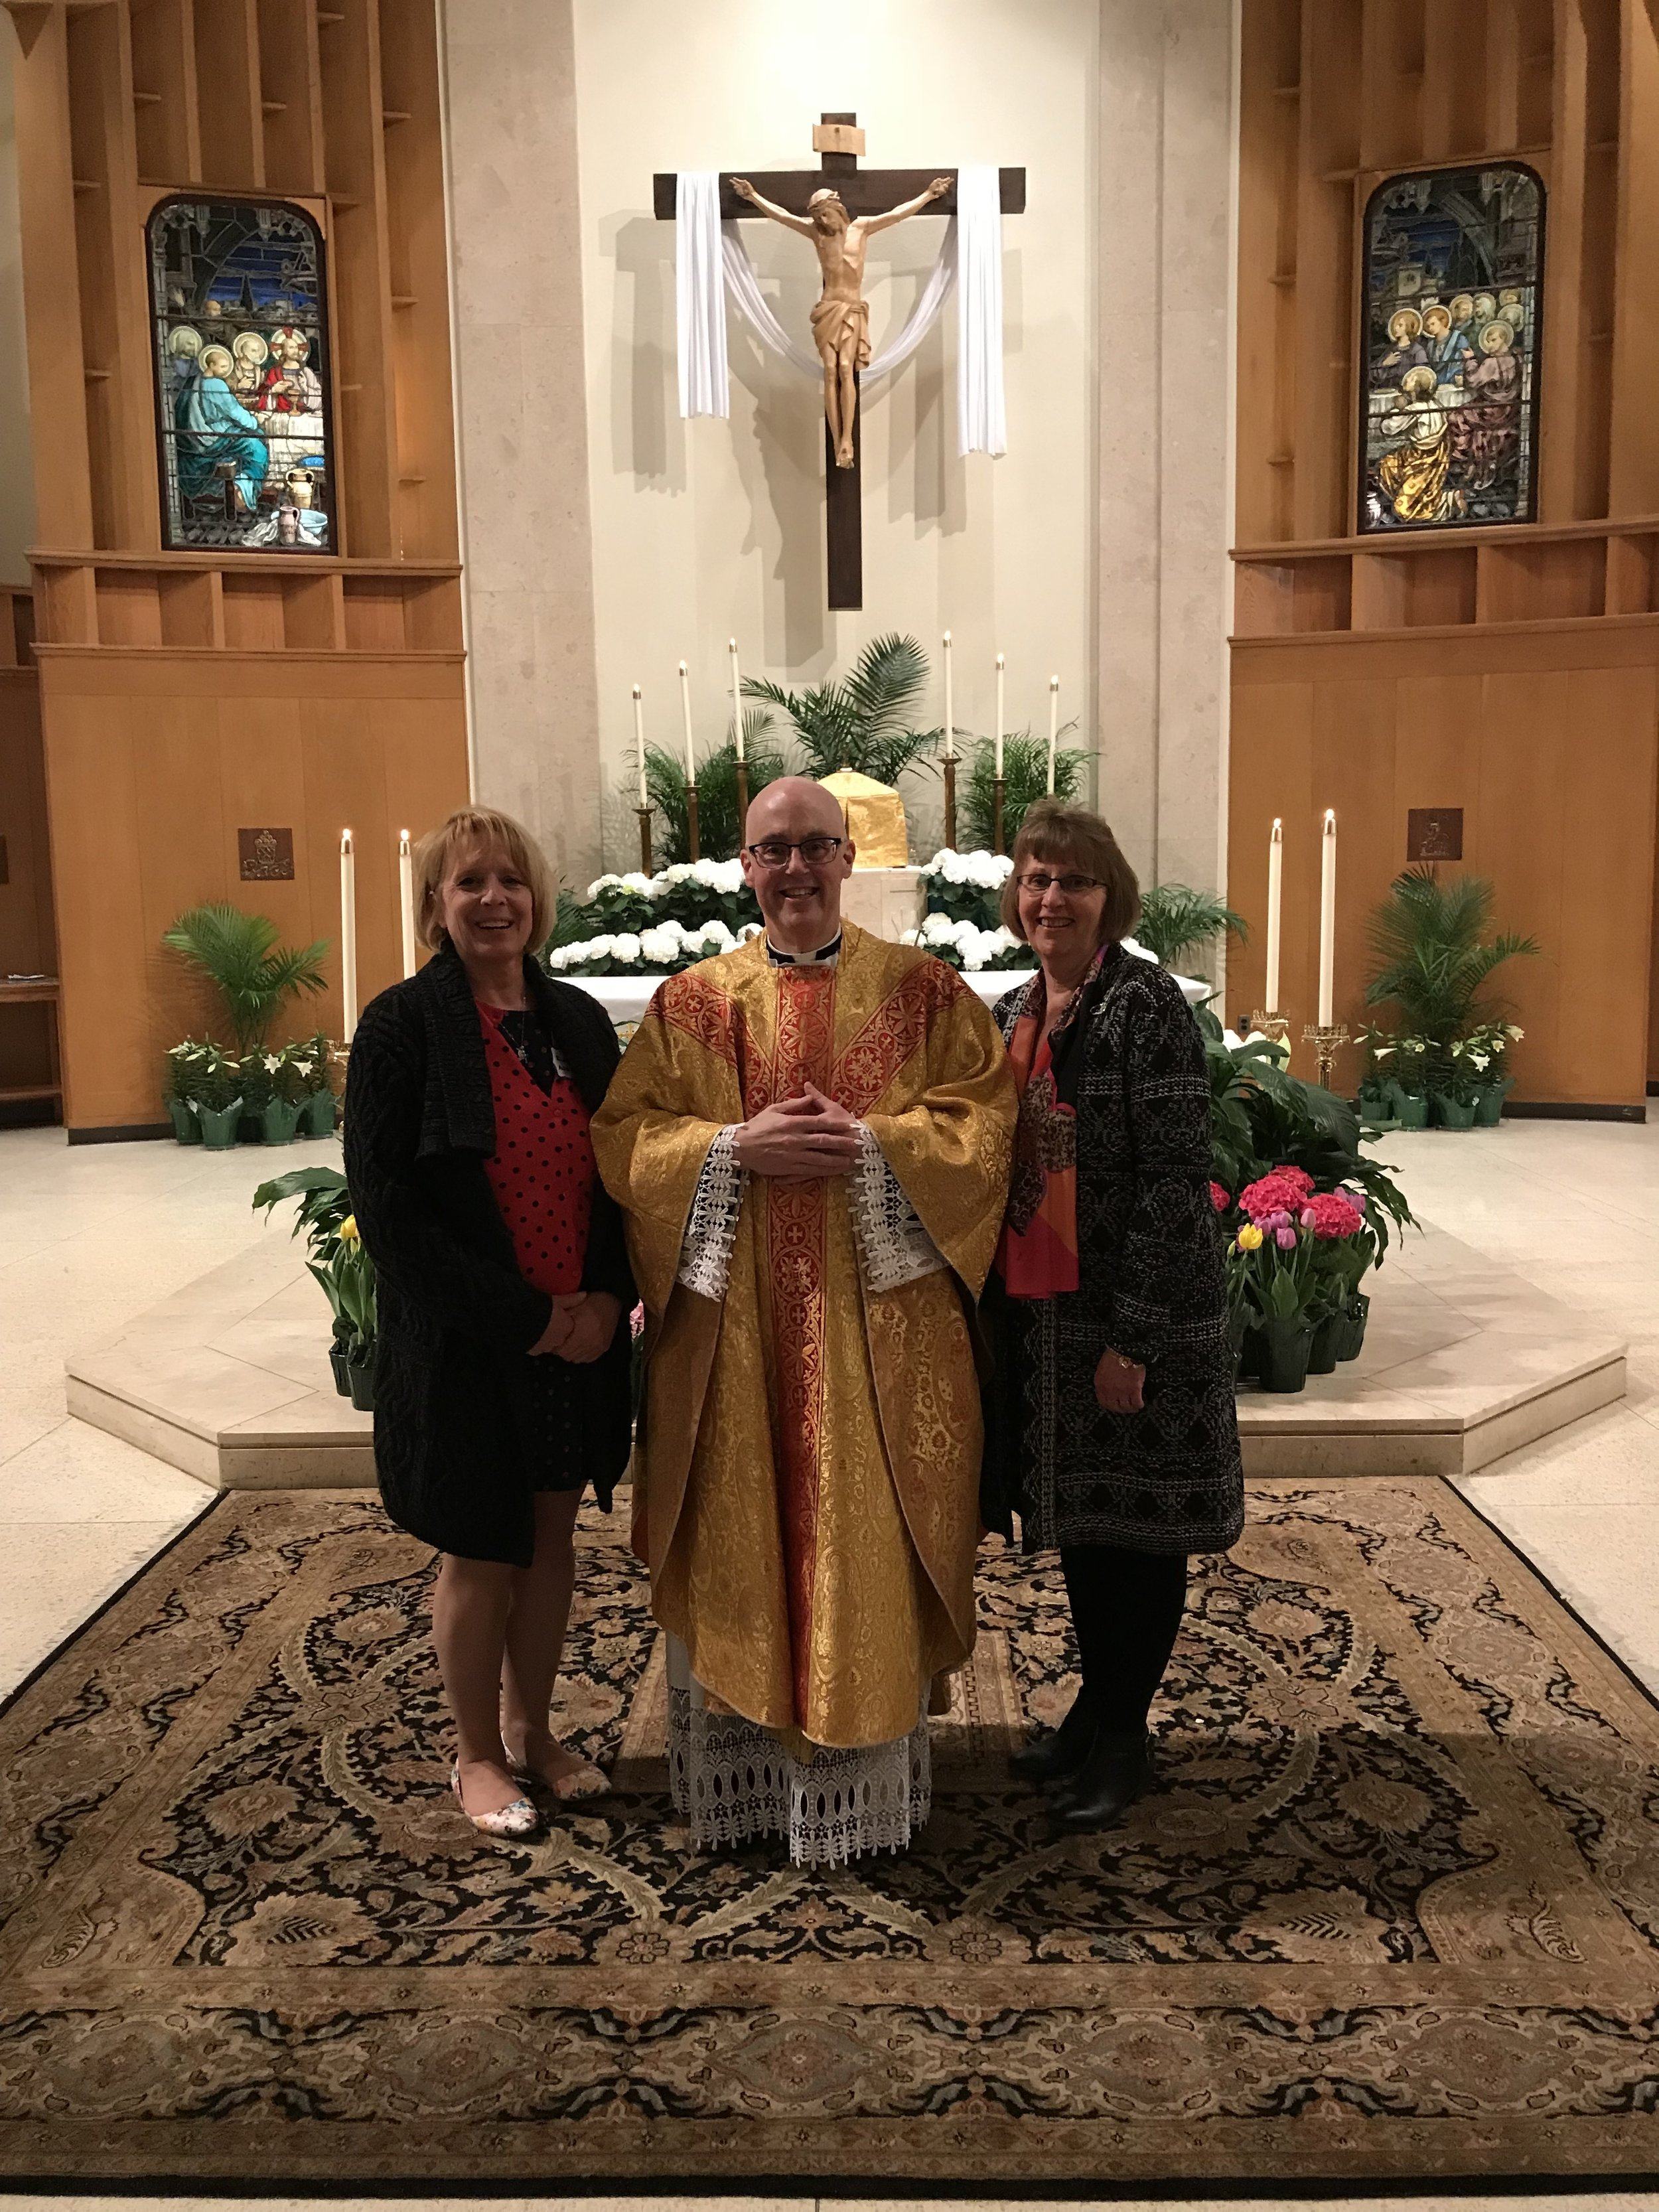 Newly recieved into the Catholic Church at the Easter Vigil on March 31st, Sue Healey poses with Fr. Healey, OLM Pastor and Janice M. Healey, her sponsor.